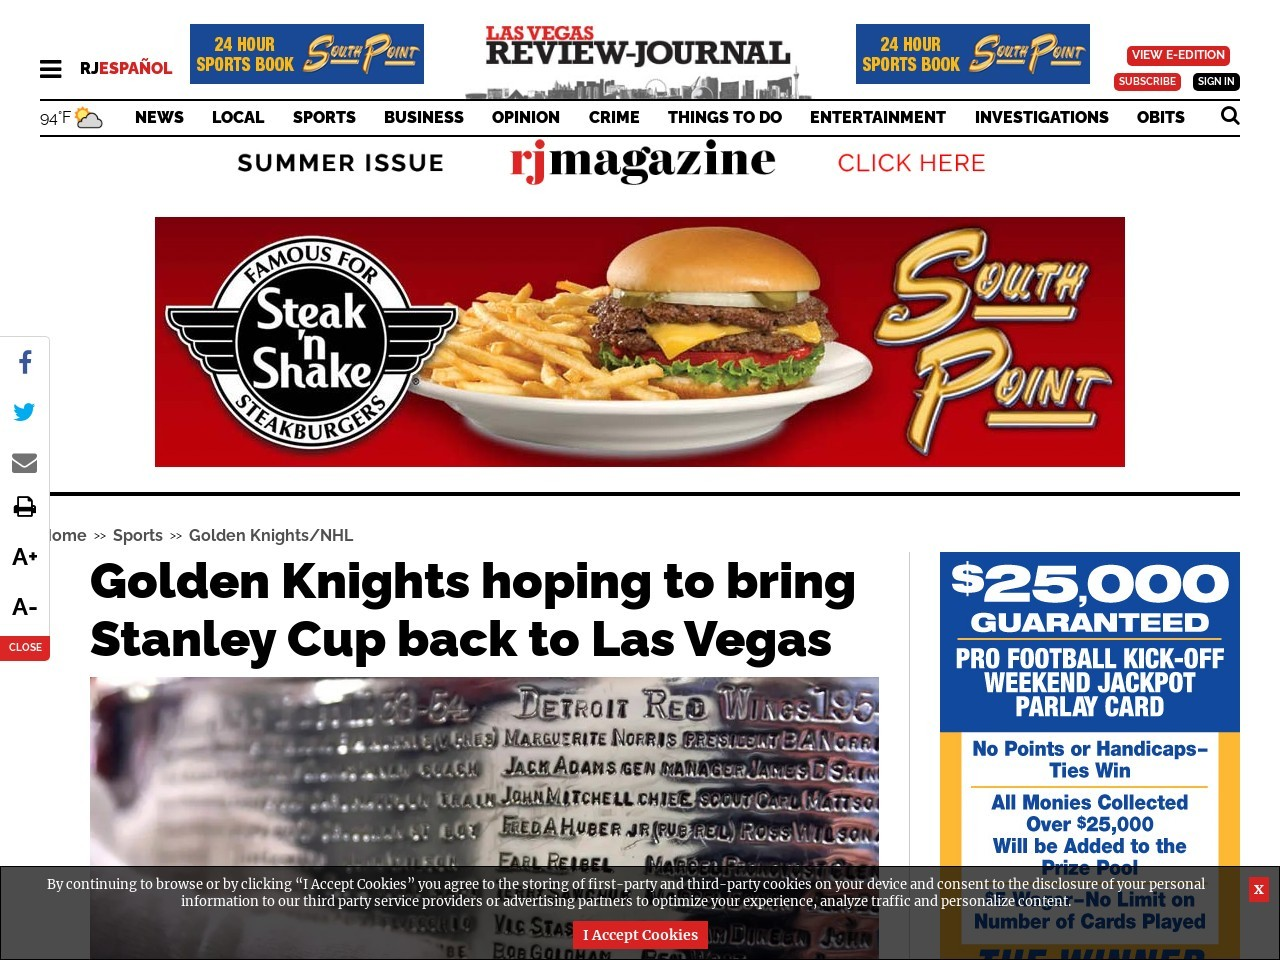 Golden Knights hoping to bring Stanley Cup back to Las Vegas